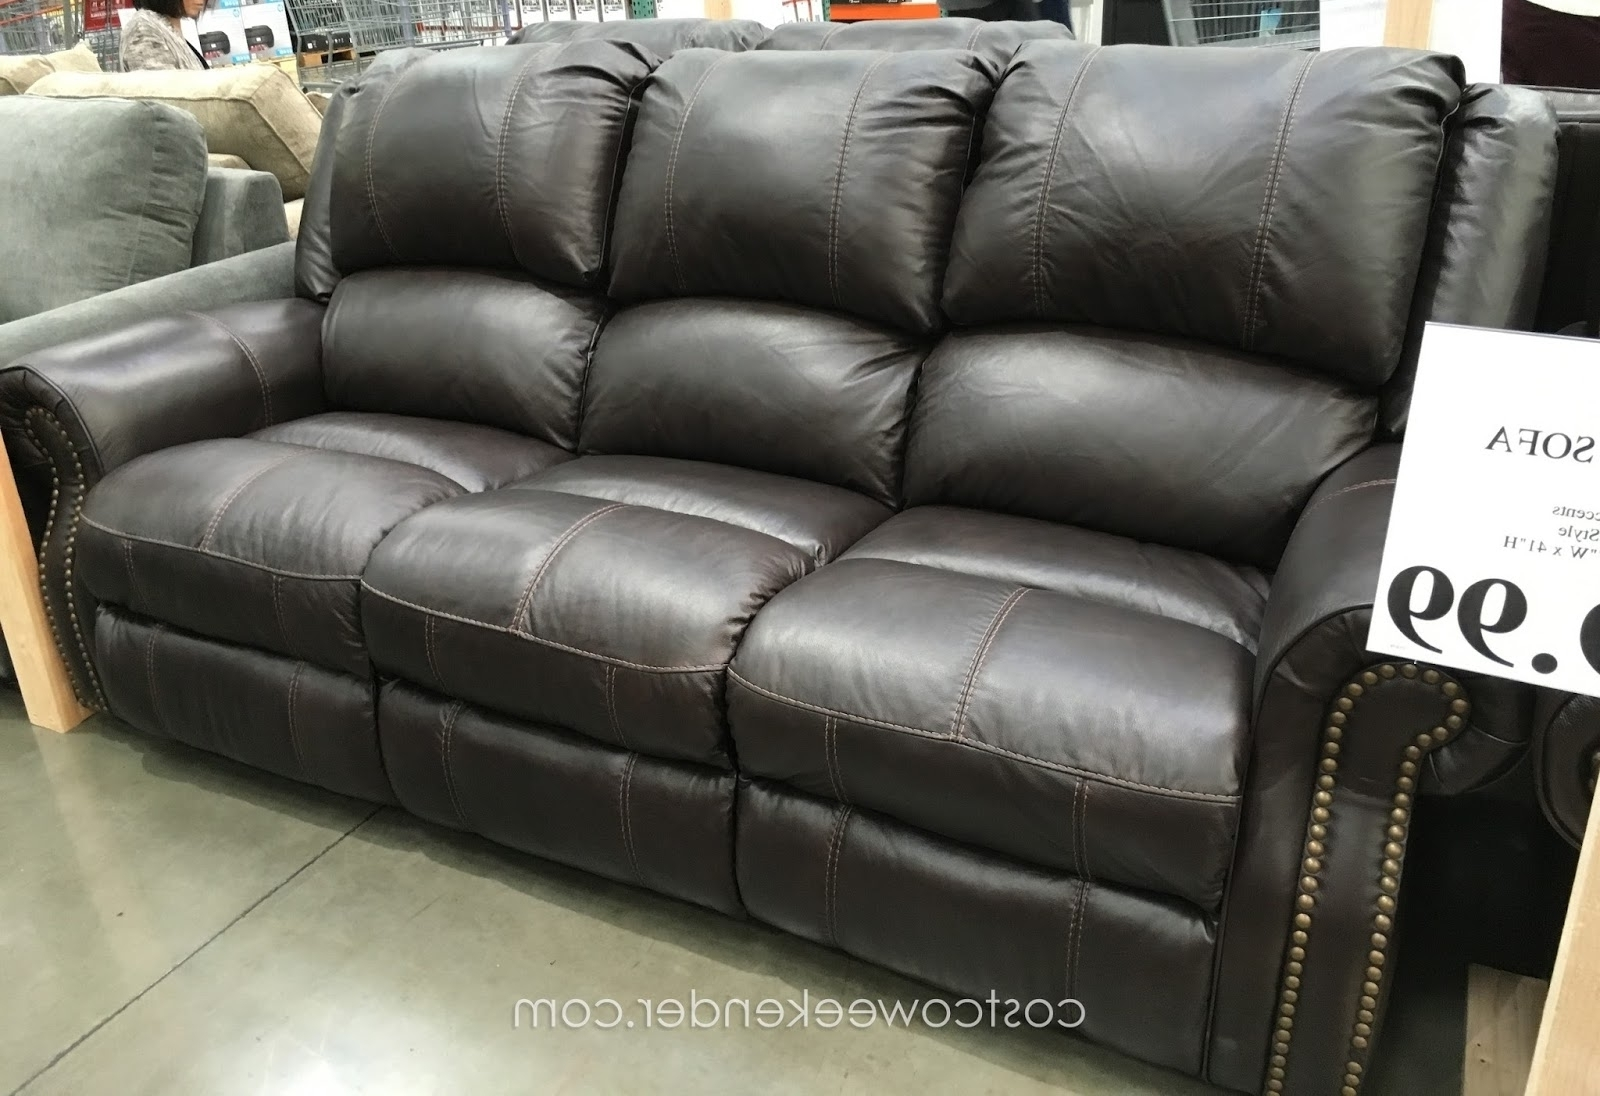 Widely Used Berkline Leather Sectional Sofas • Leather Sofa Within Berkline Sectional Sofas (View 2 of 20)